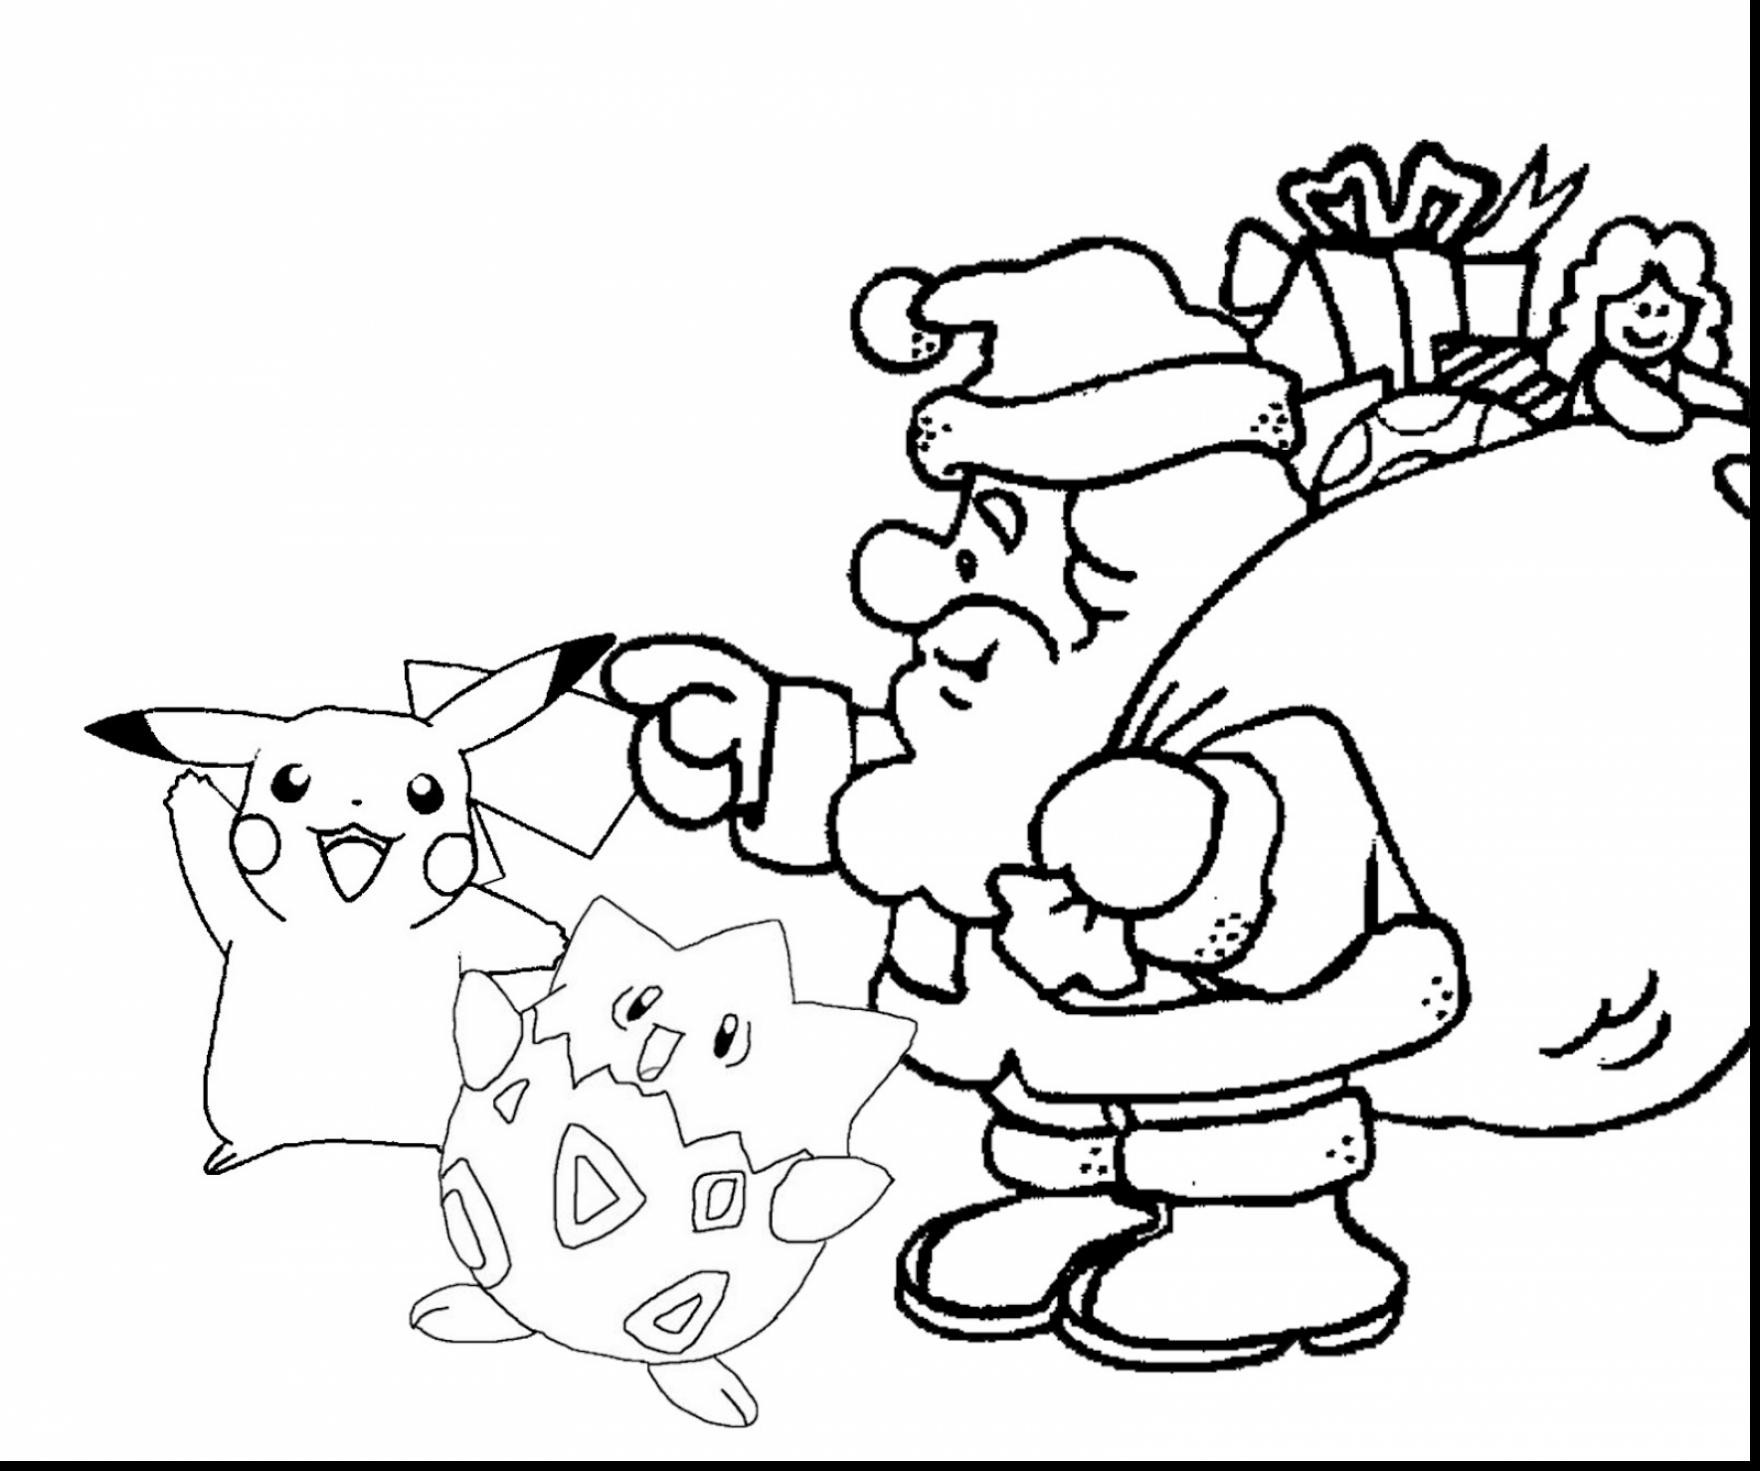 1760x1471 Best Of Pokemon Iris Coloring Pages New Ash Ketchum Coloring Page